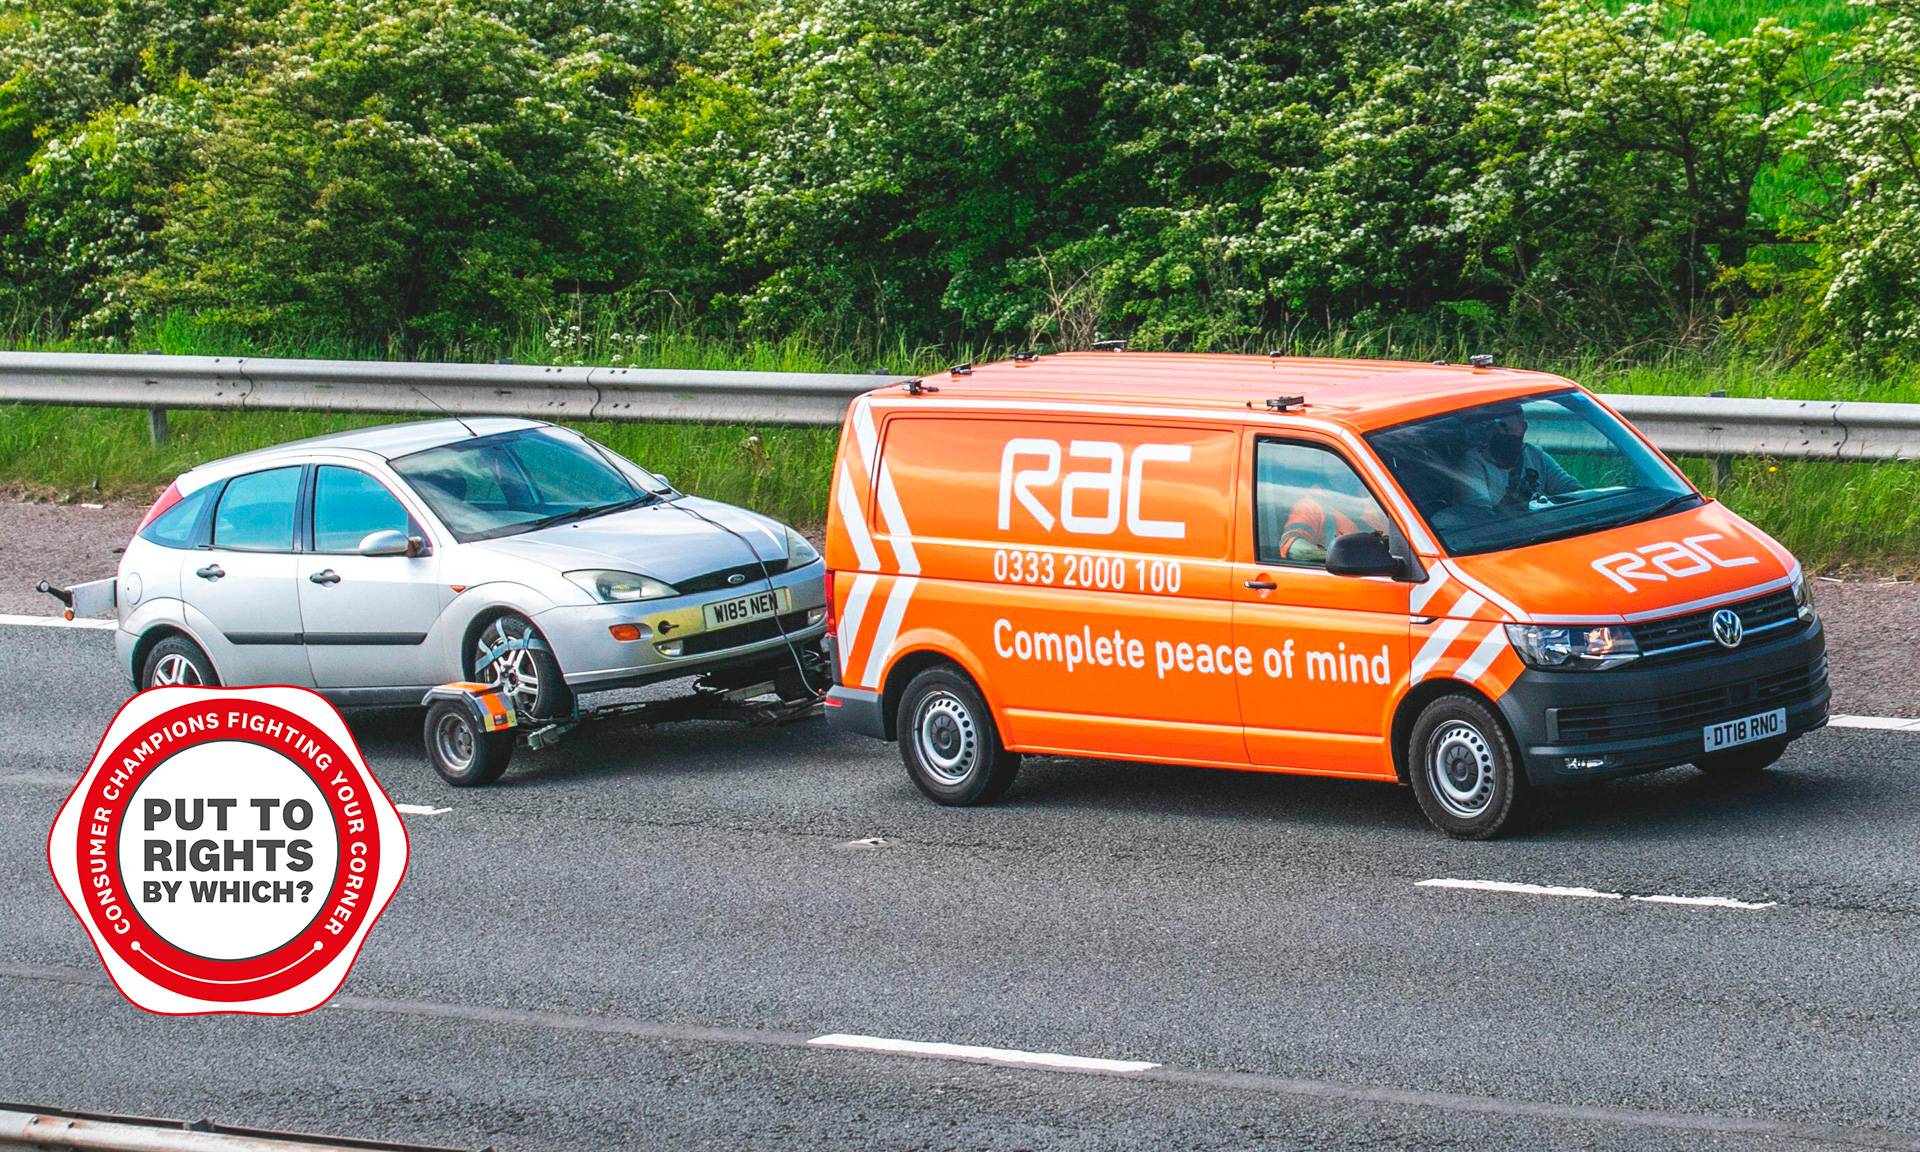 'Breakdown firm RAC abandoned us for more than 12 hours. Can I claim compensation?' – Which? News